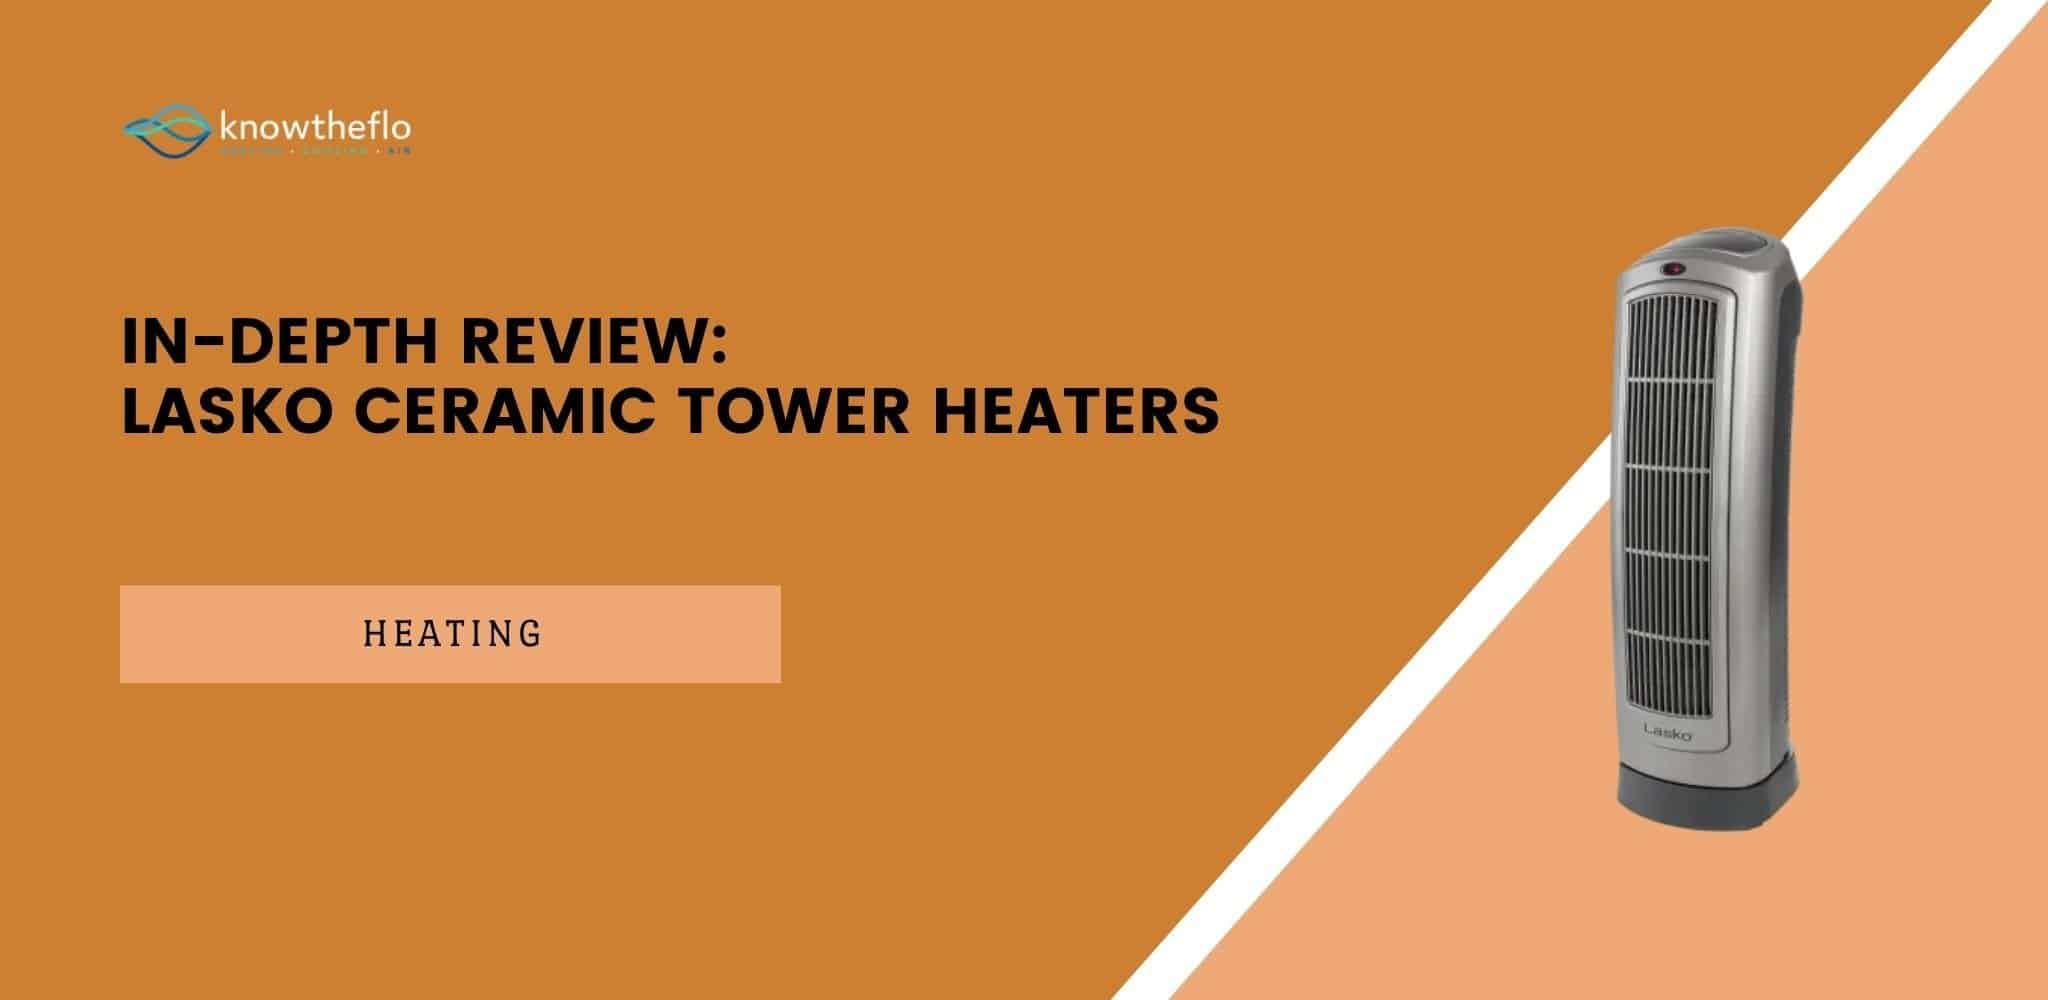 In-Depth Review - Lasko ceramic Tower Heaters